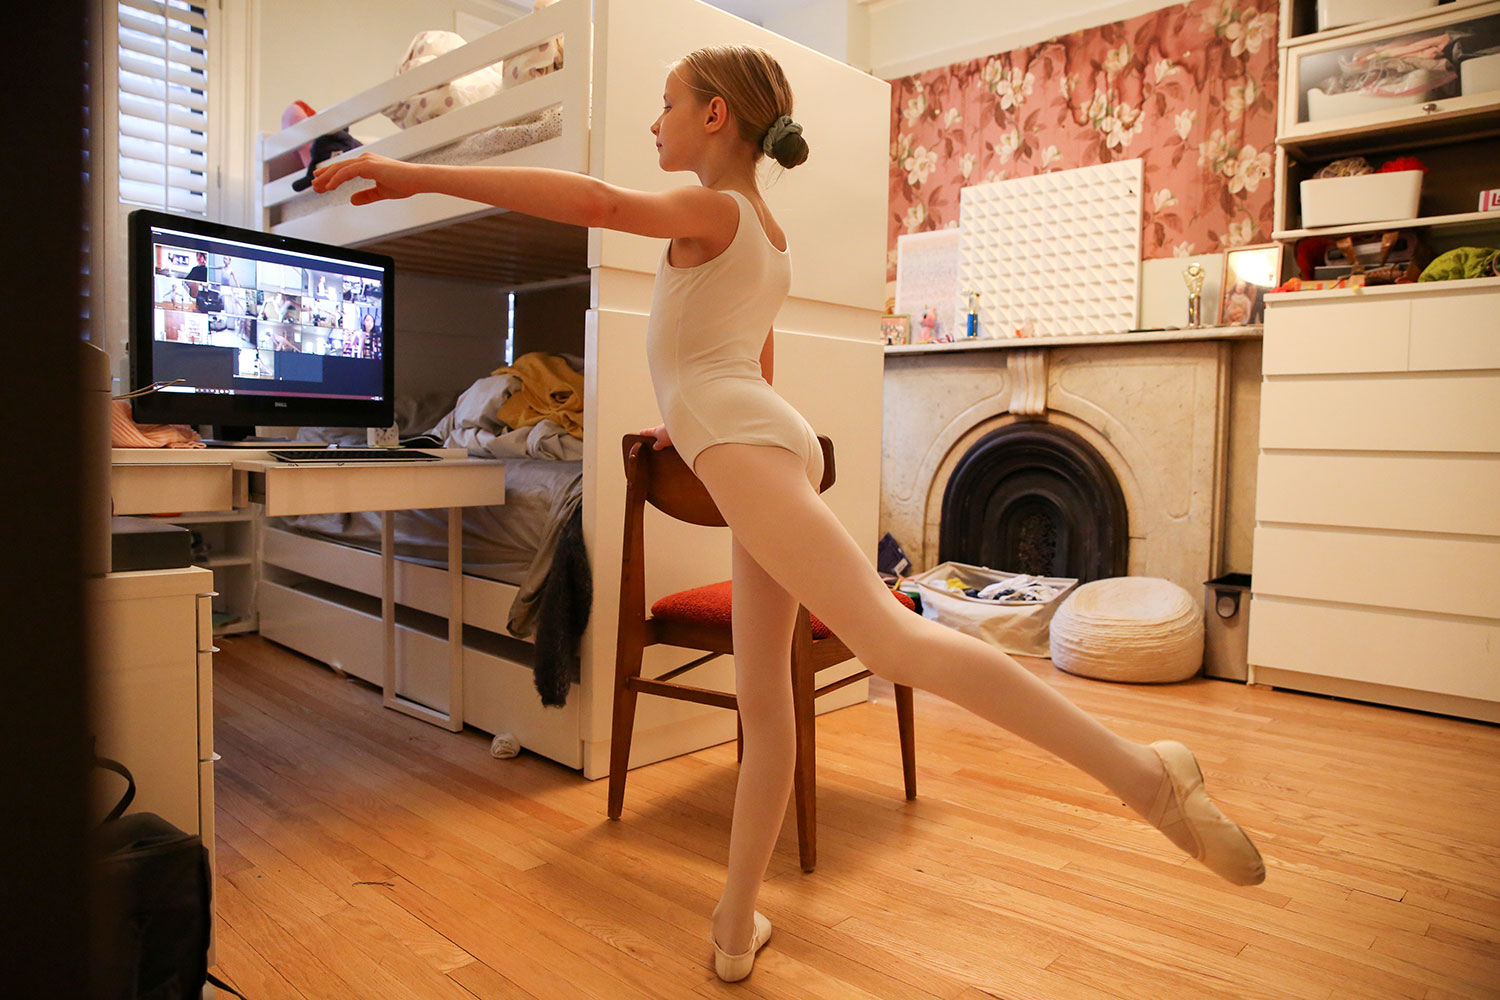 Picture shows a young pre-teen girl in a ballet uniform with one leg up in the air in front of a home computer.